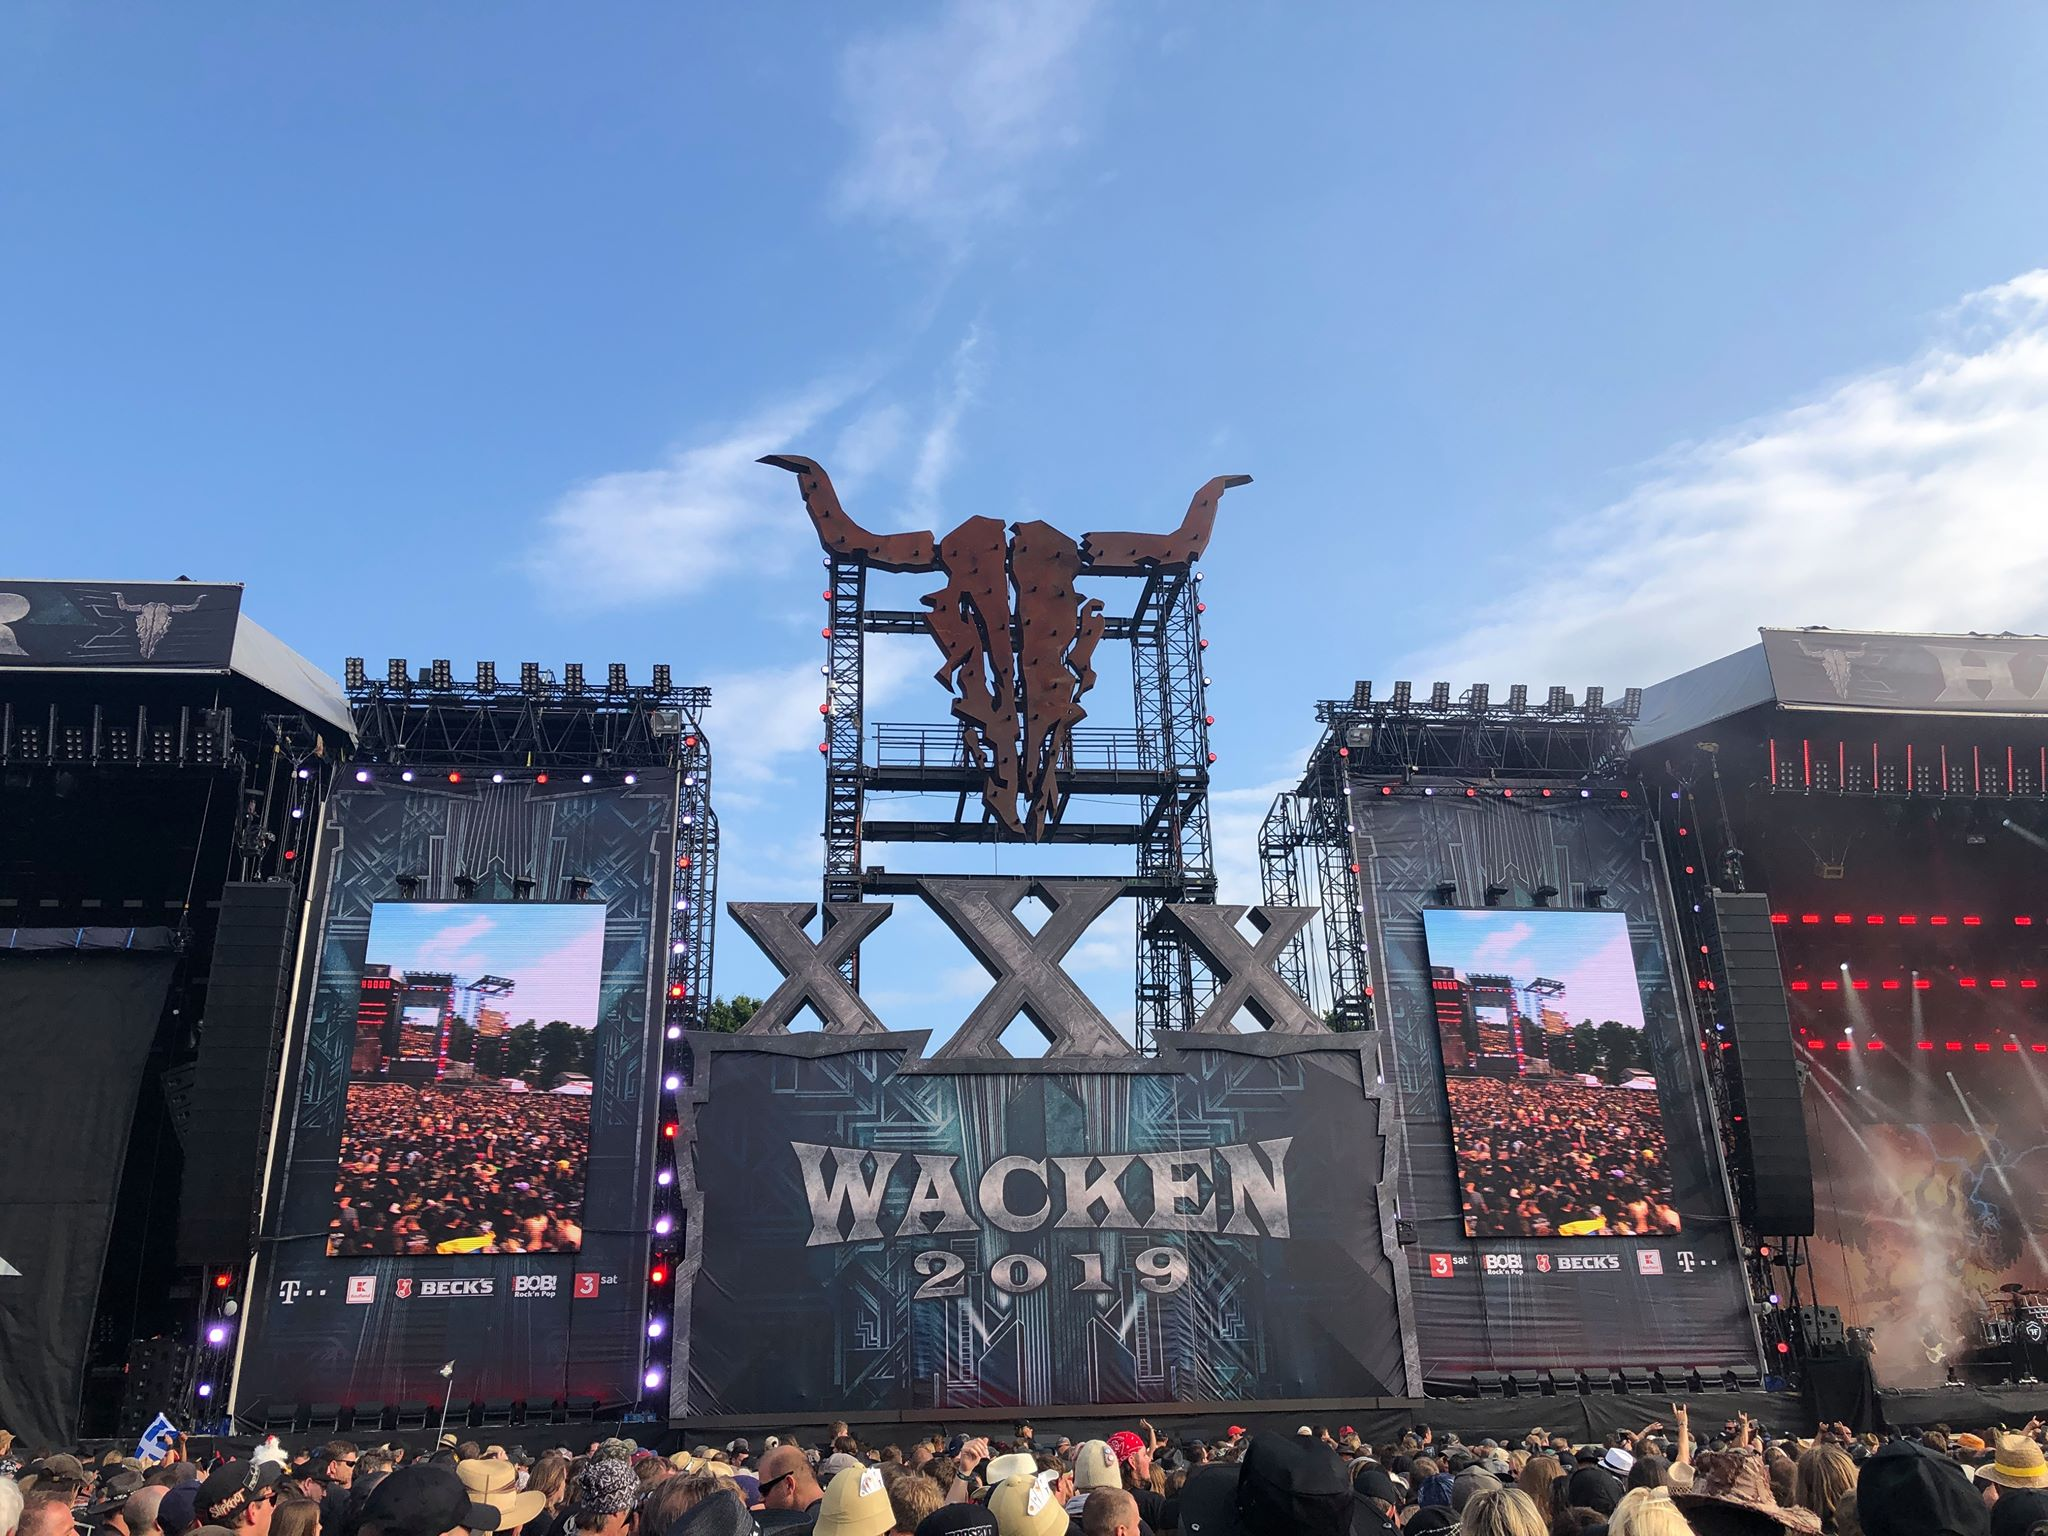 30 years of the most immersive metal madness. Wacken Open Air 2019 report